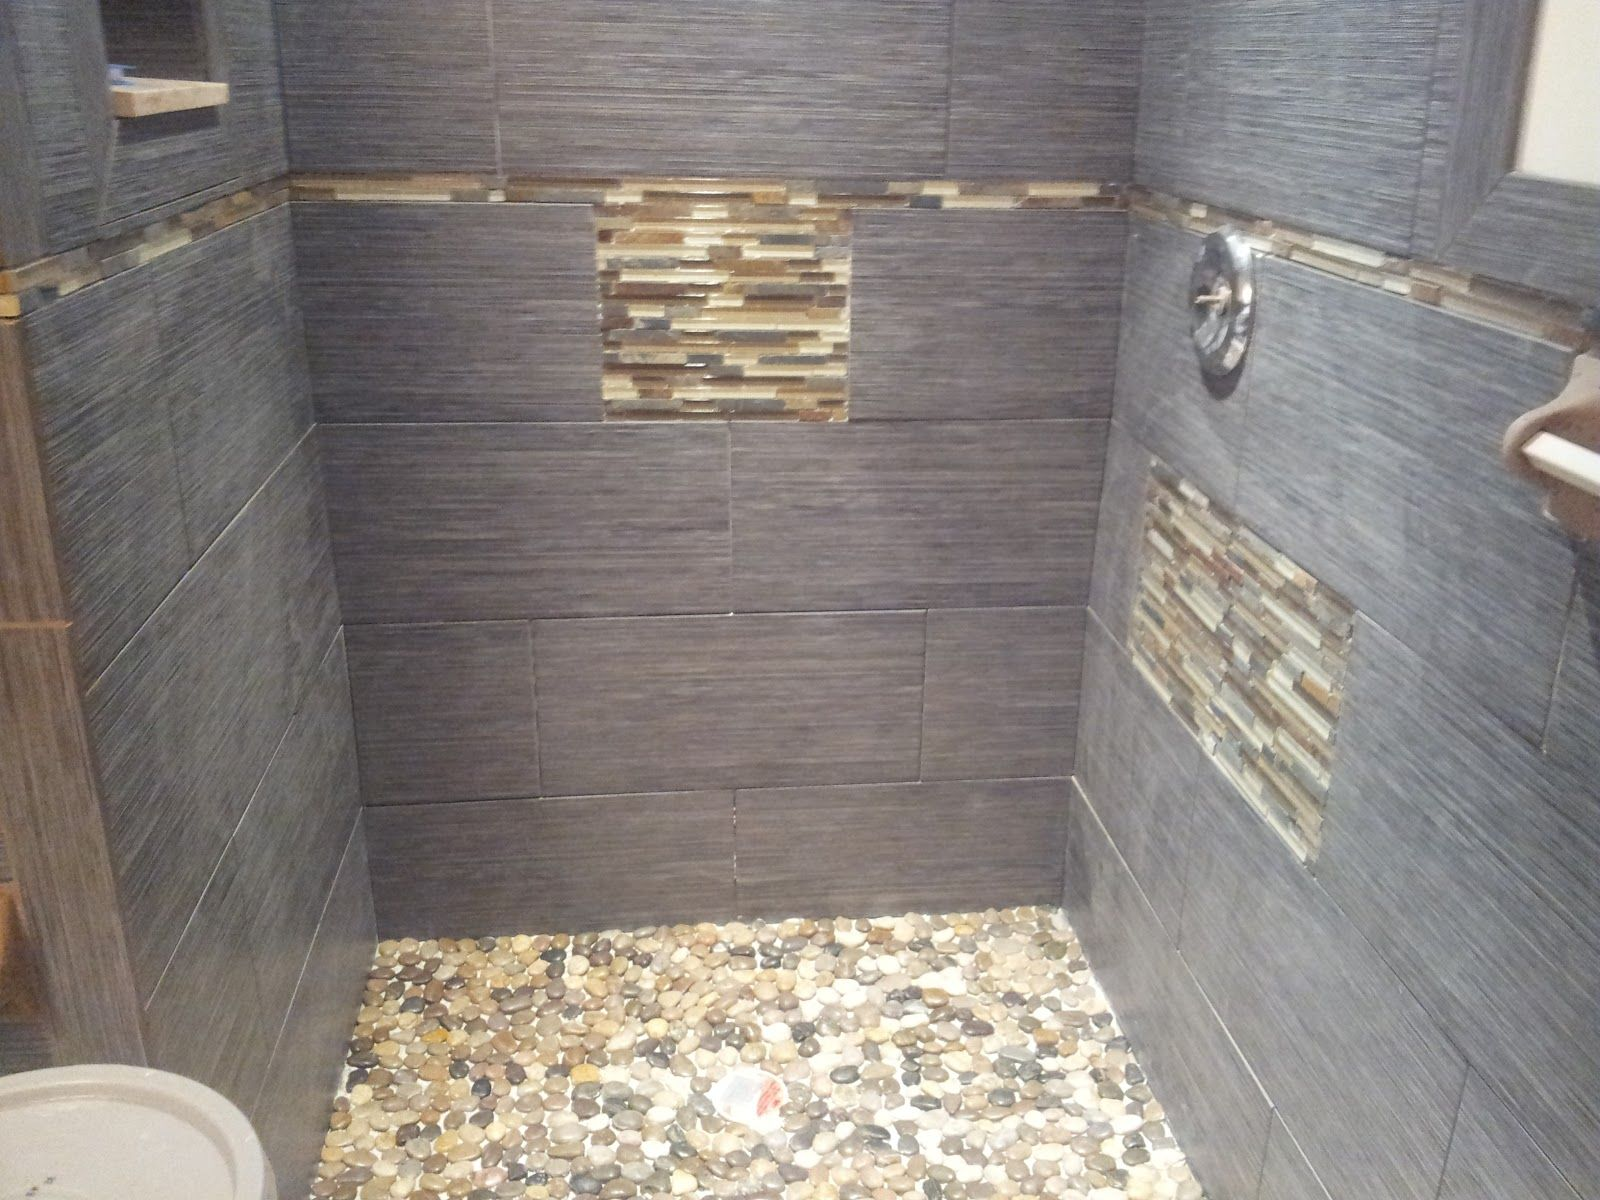 Floor installation photos custom tile showers in margate new jersey floor installation photos custom tile showers in margate new jersey carpet cleaning best dailygadgetfo Image collections